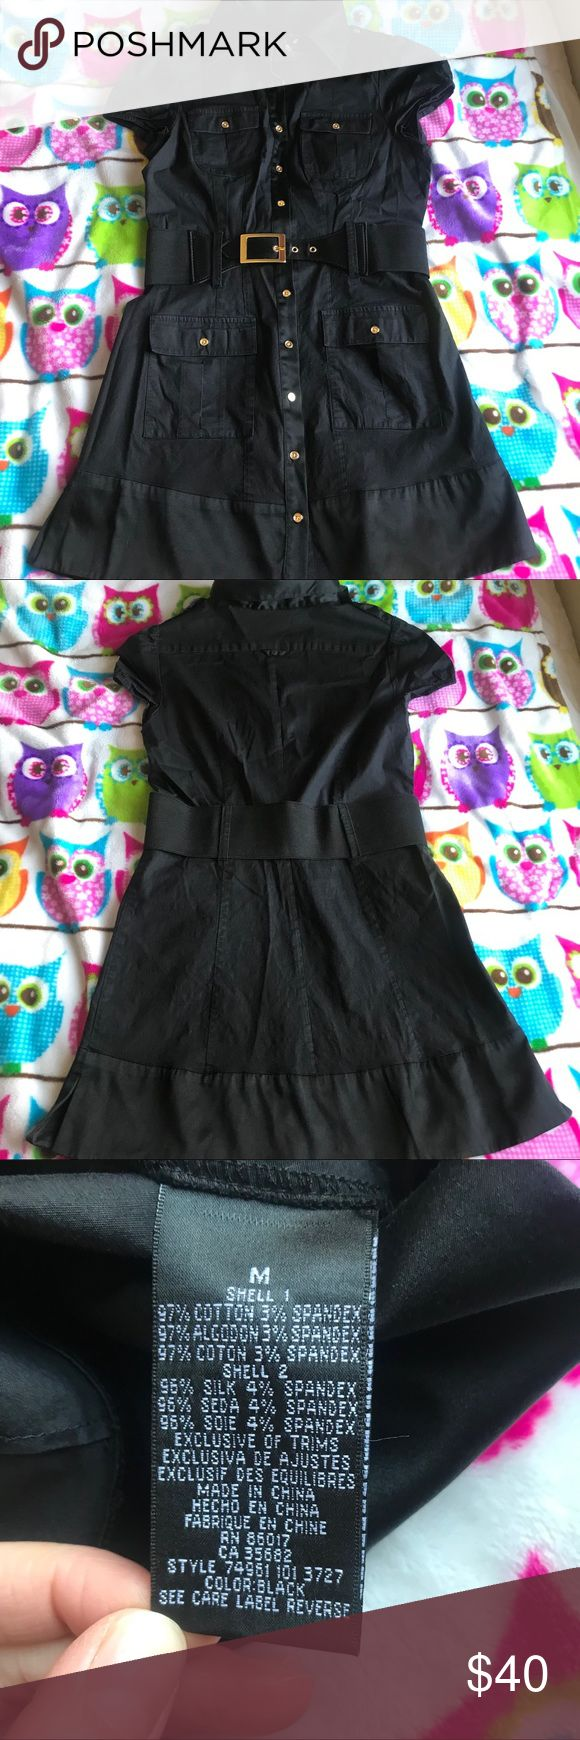 bebe Black Shirt Dress Size M Black shirt dress, Black